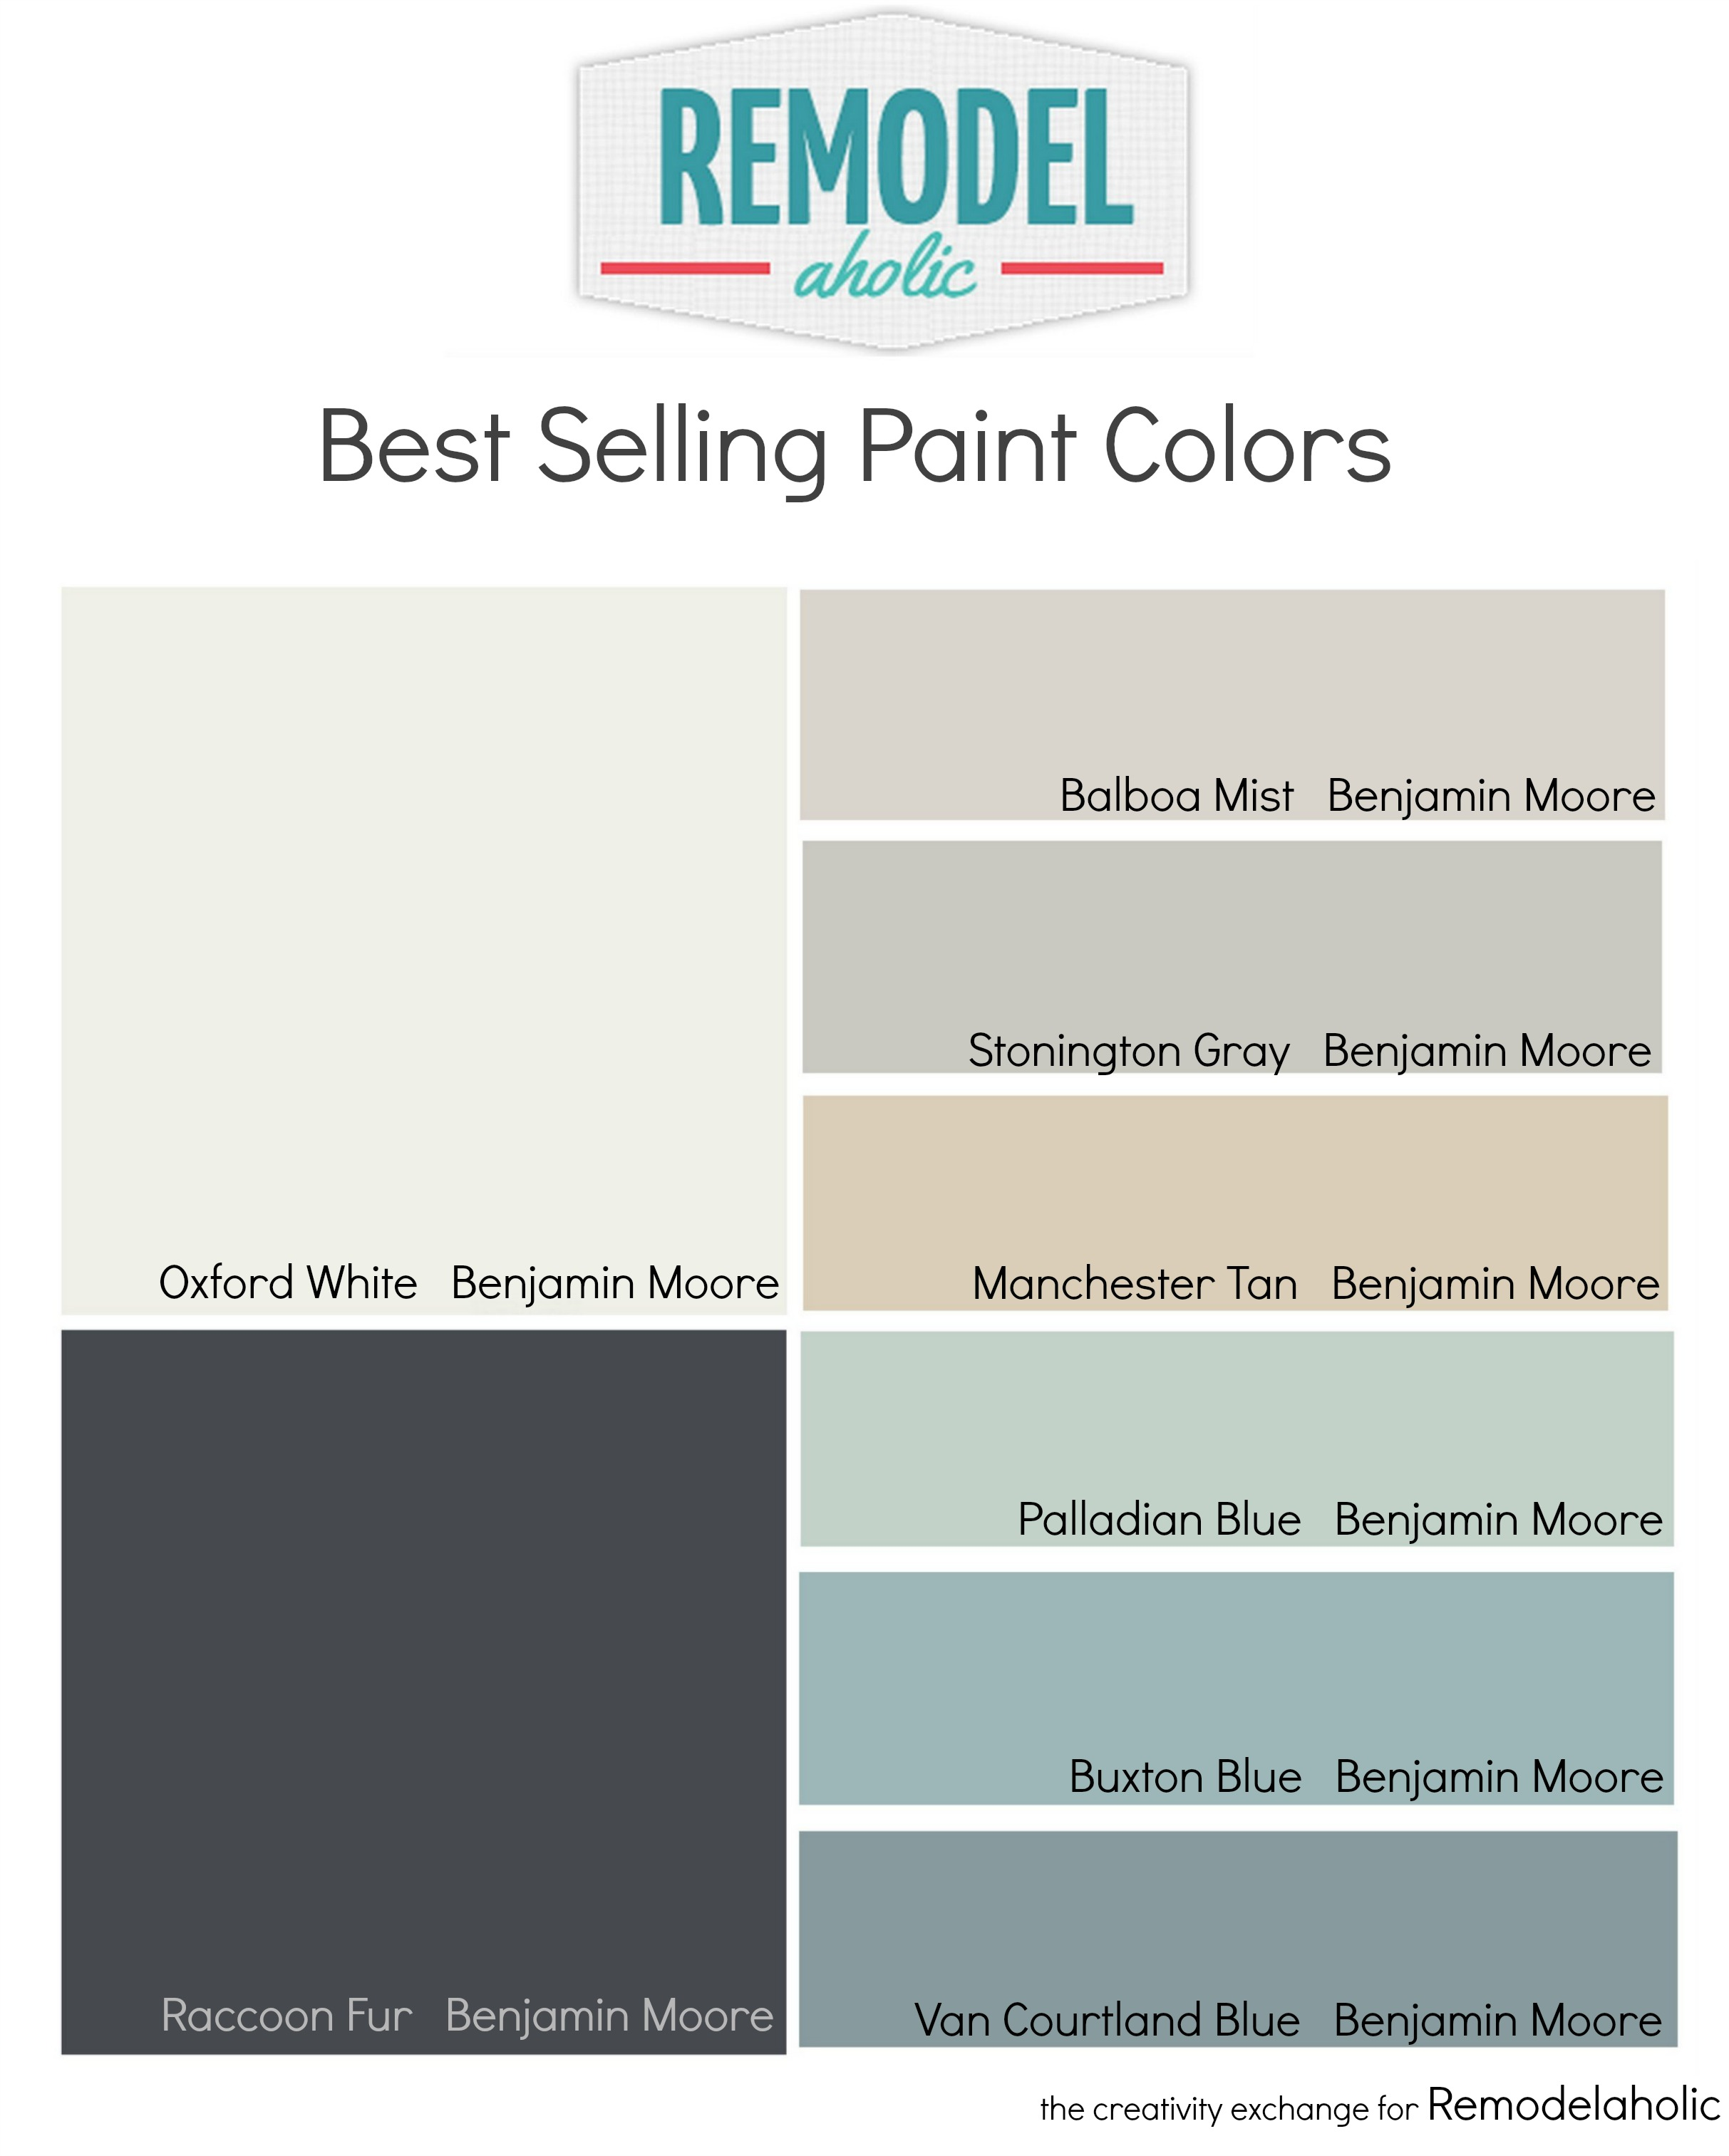 Most Por And Best Ing Paint Colors Remodelaholic